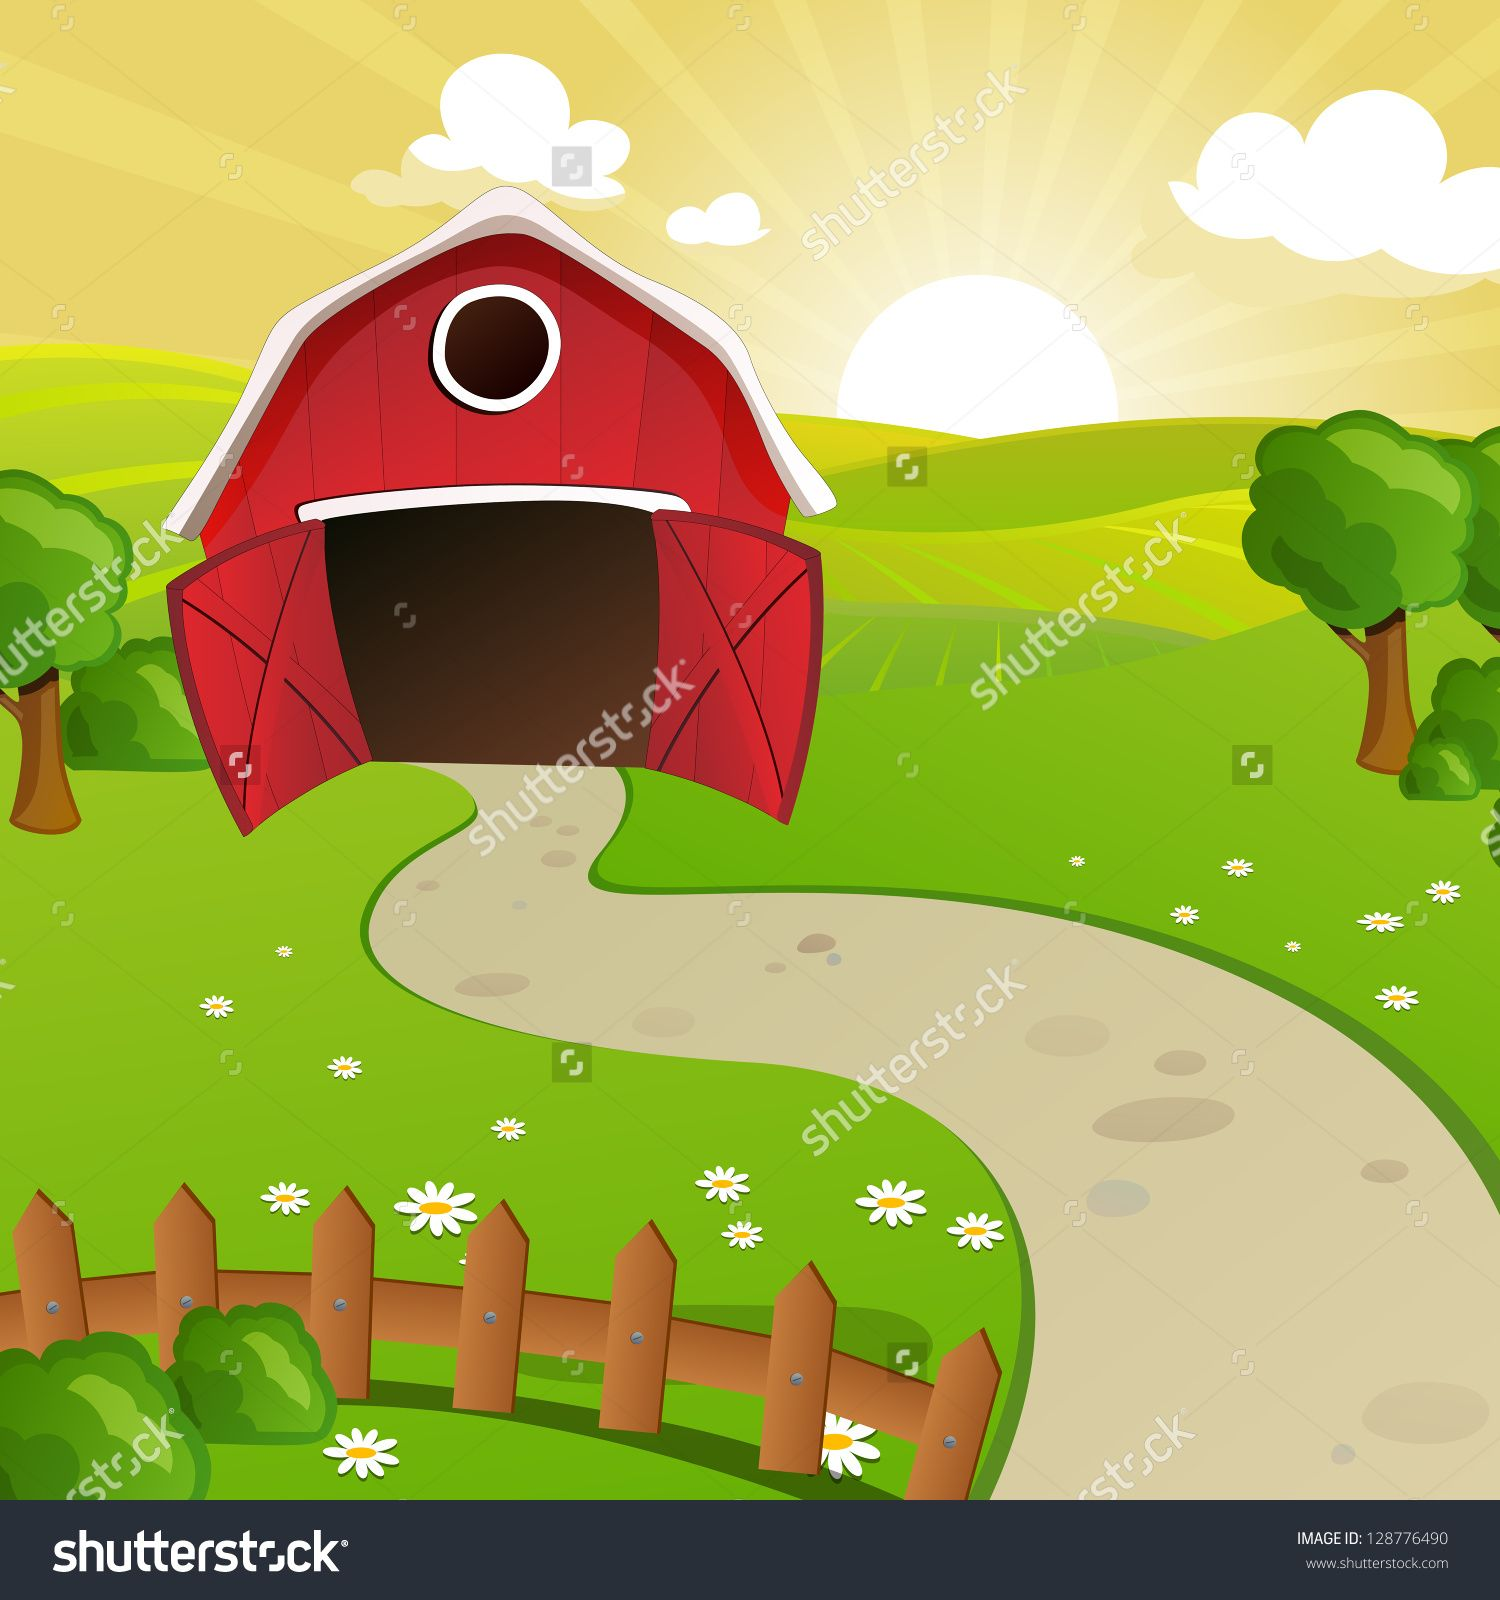 Farm Cartoon Stock Photos, Images, & Pictures | Shutterstock | Farm ...